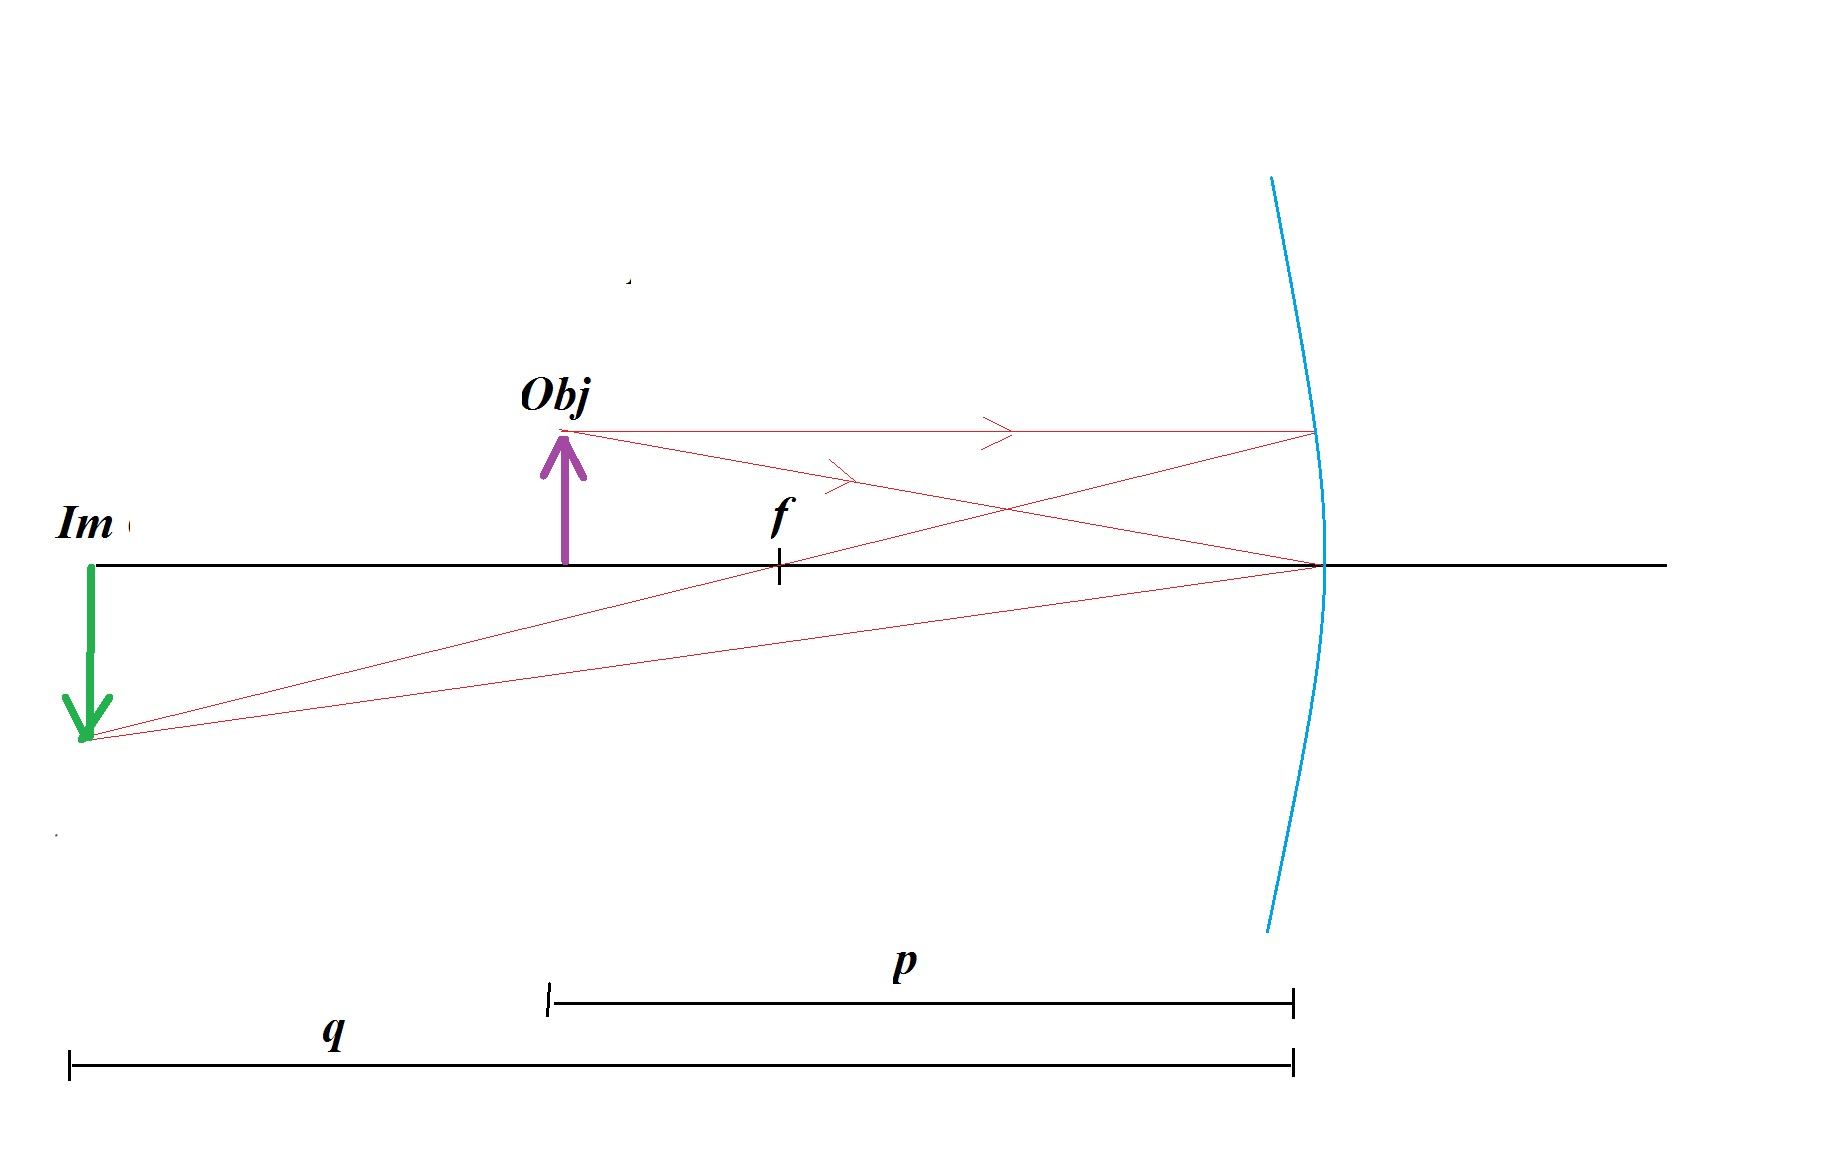 Concave Mirror Diagram An Object Of Height 8 Cm Is Placed 28 Cm In Front Of A Concave